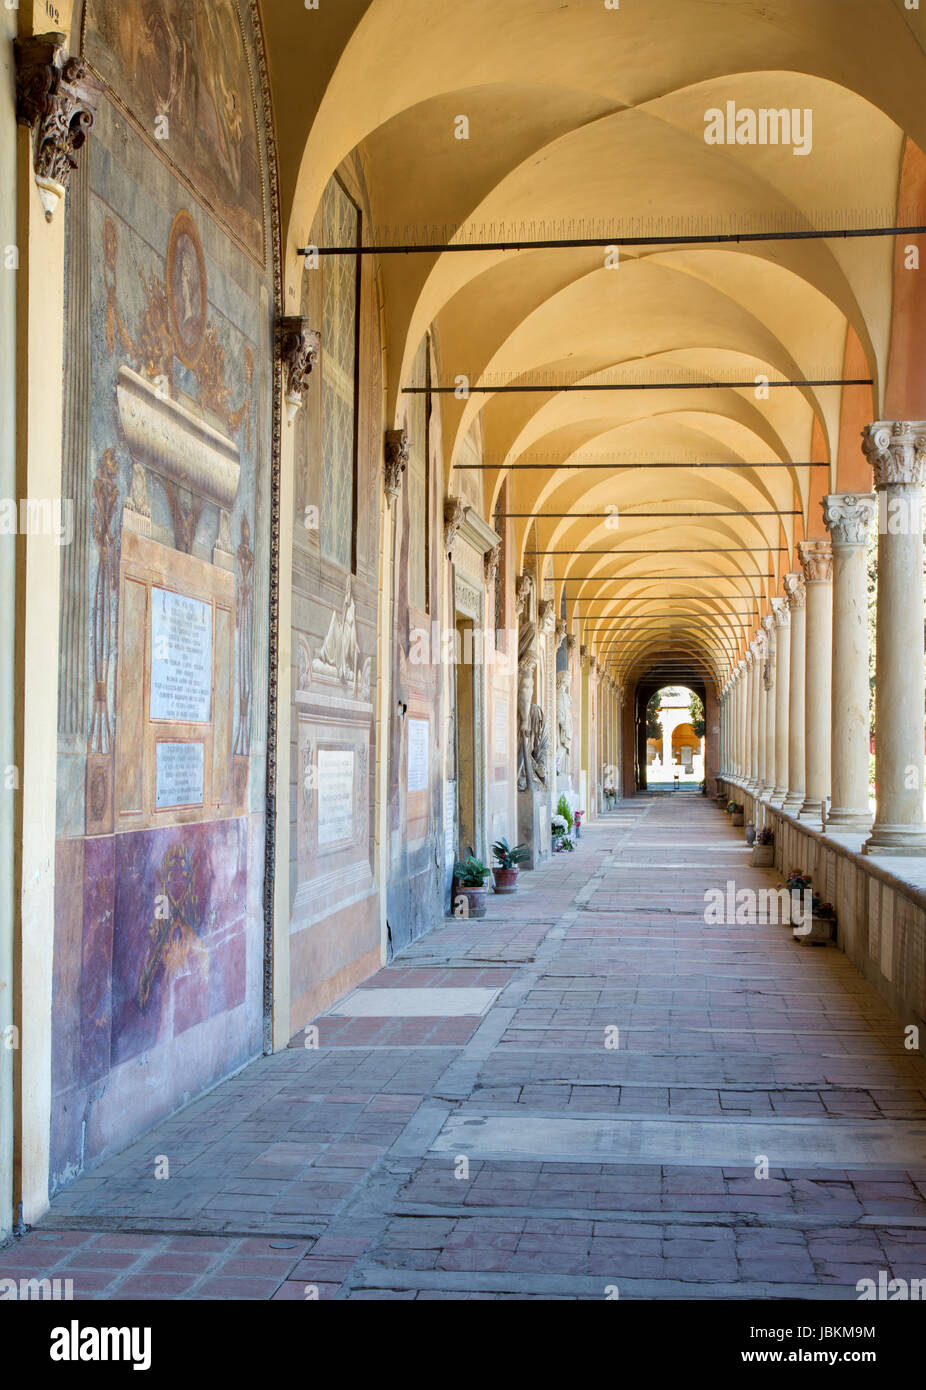 BOLOGNA, ITALY - MARCH 17, 2014: Old cemetery (certosa) by St. Girolamo church. Stock Photo